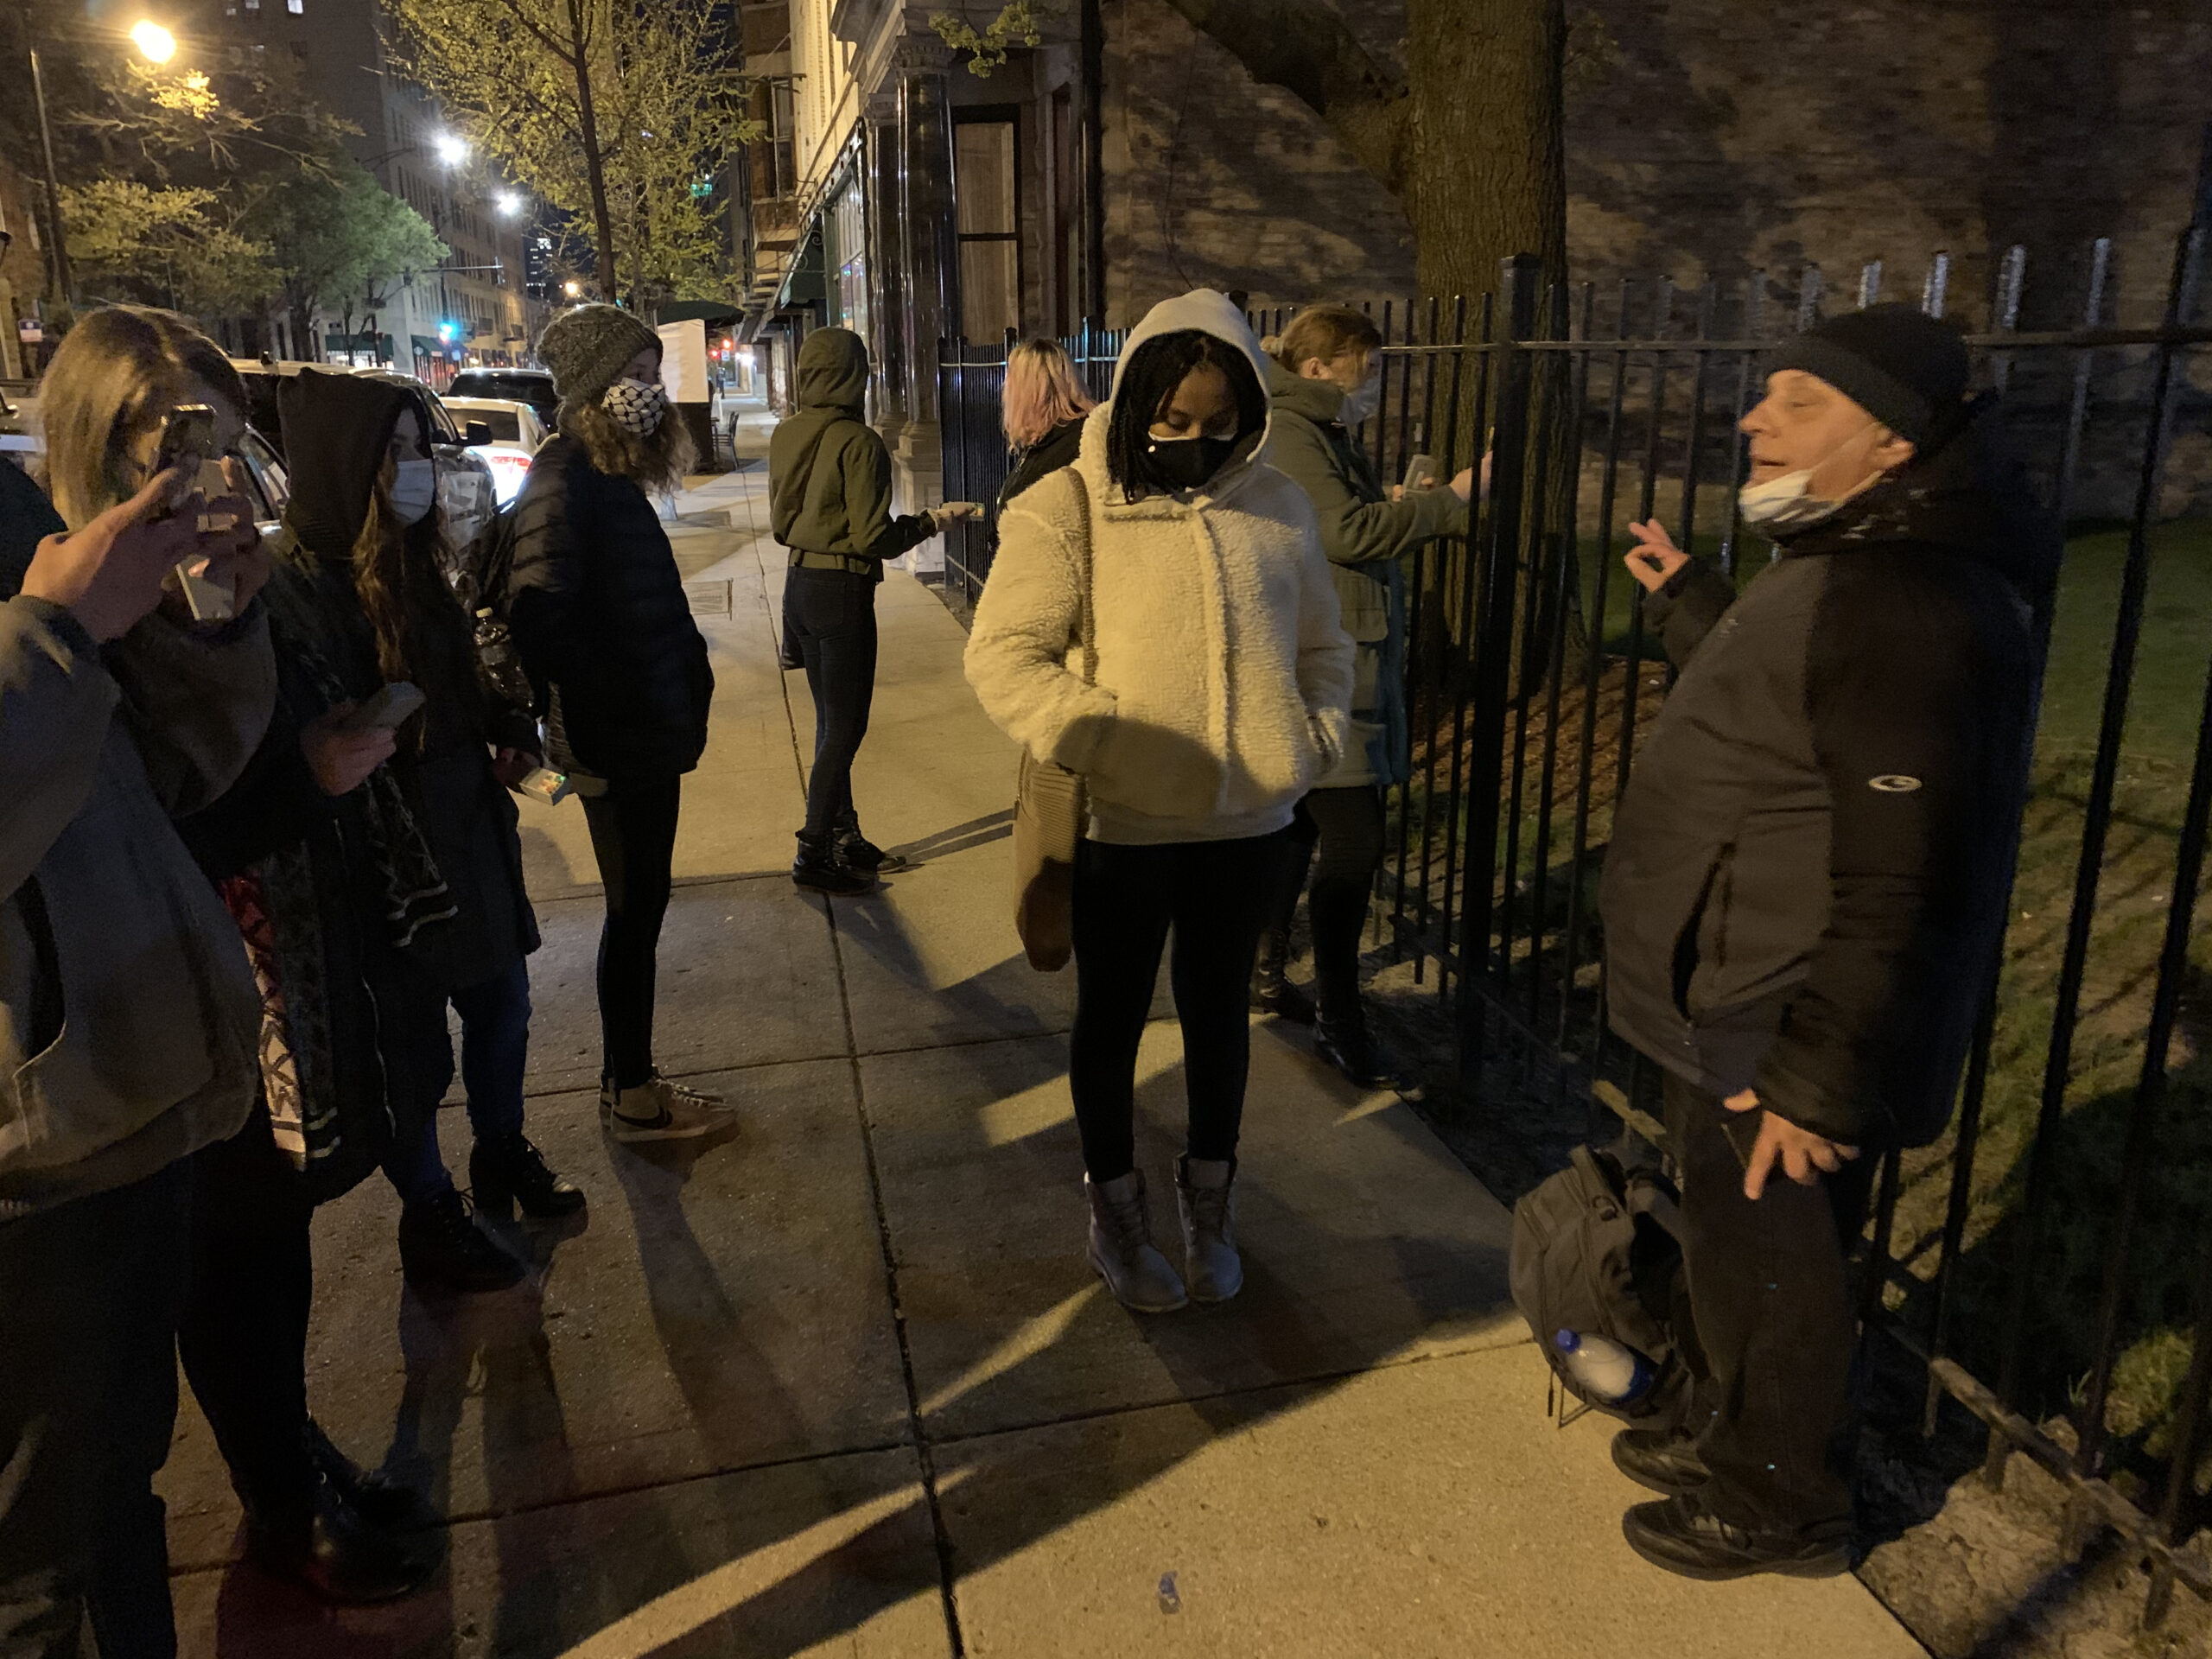 Lincoln Park Ghost Tour and Investigation Group